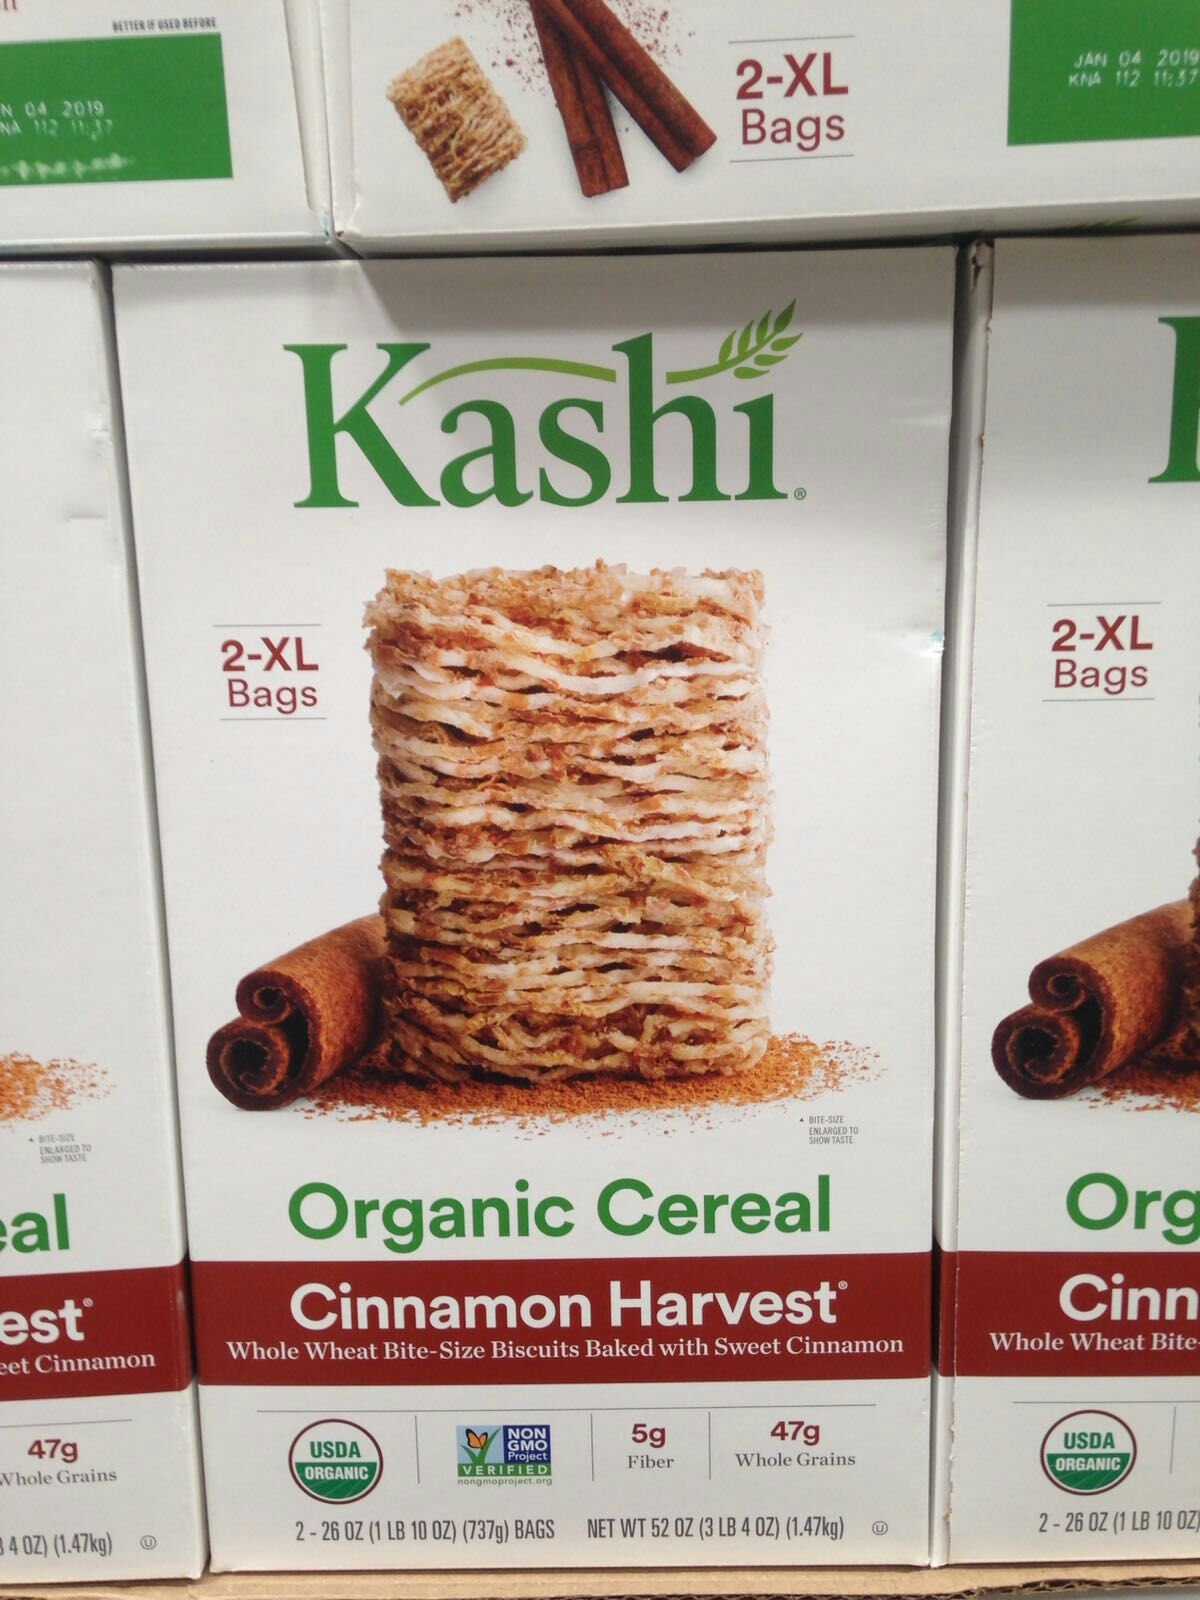 Kashi cinnamon harvest 52 oz. (pack of 6) A1